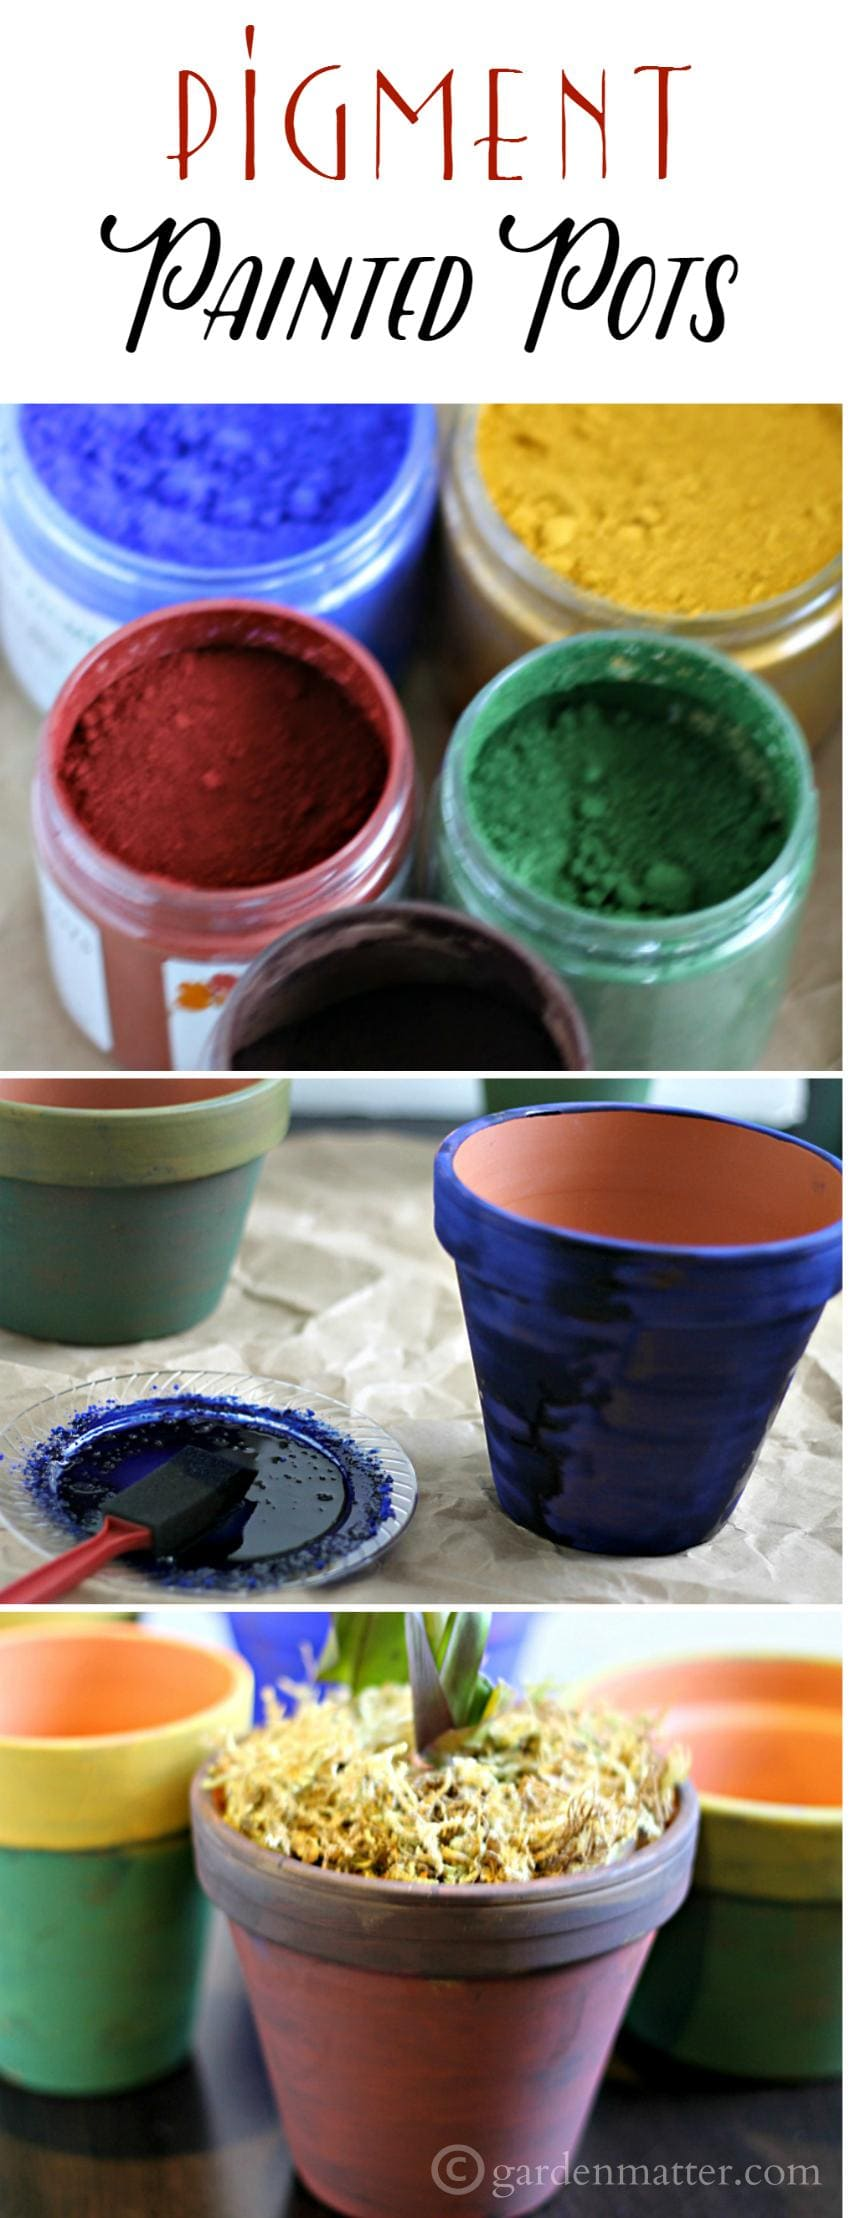 Learn about painted pots using linseed oil and natural non-toxic pigment powder on your terra cotta pots. They age really well and create a nice patina.